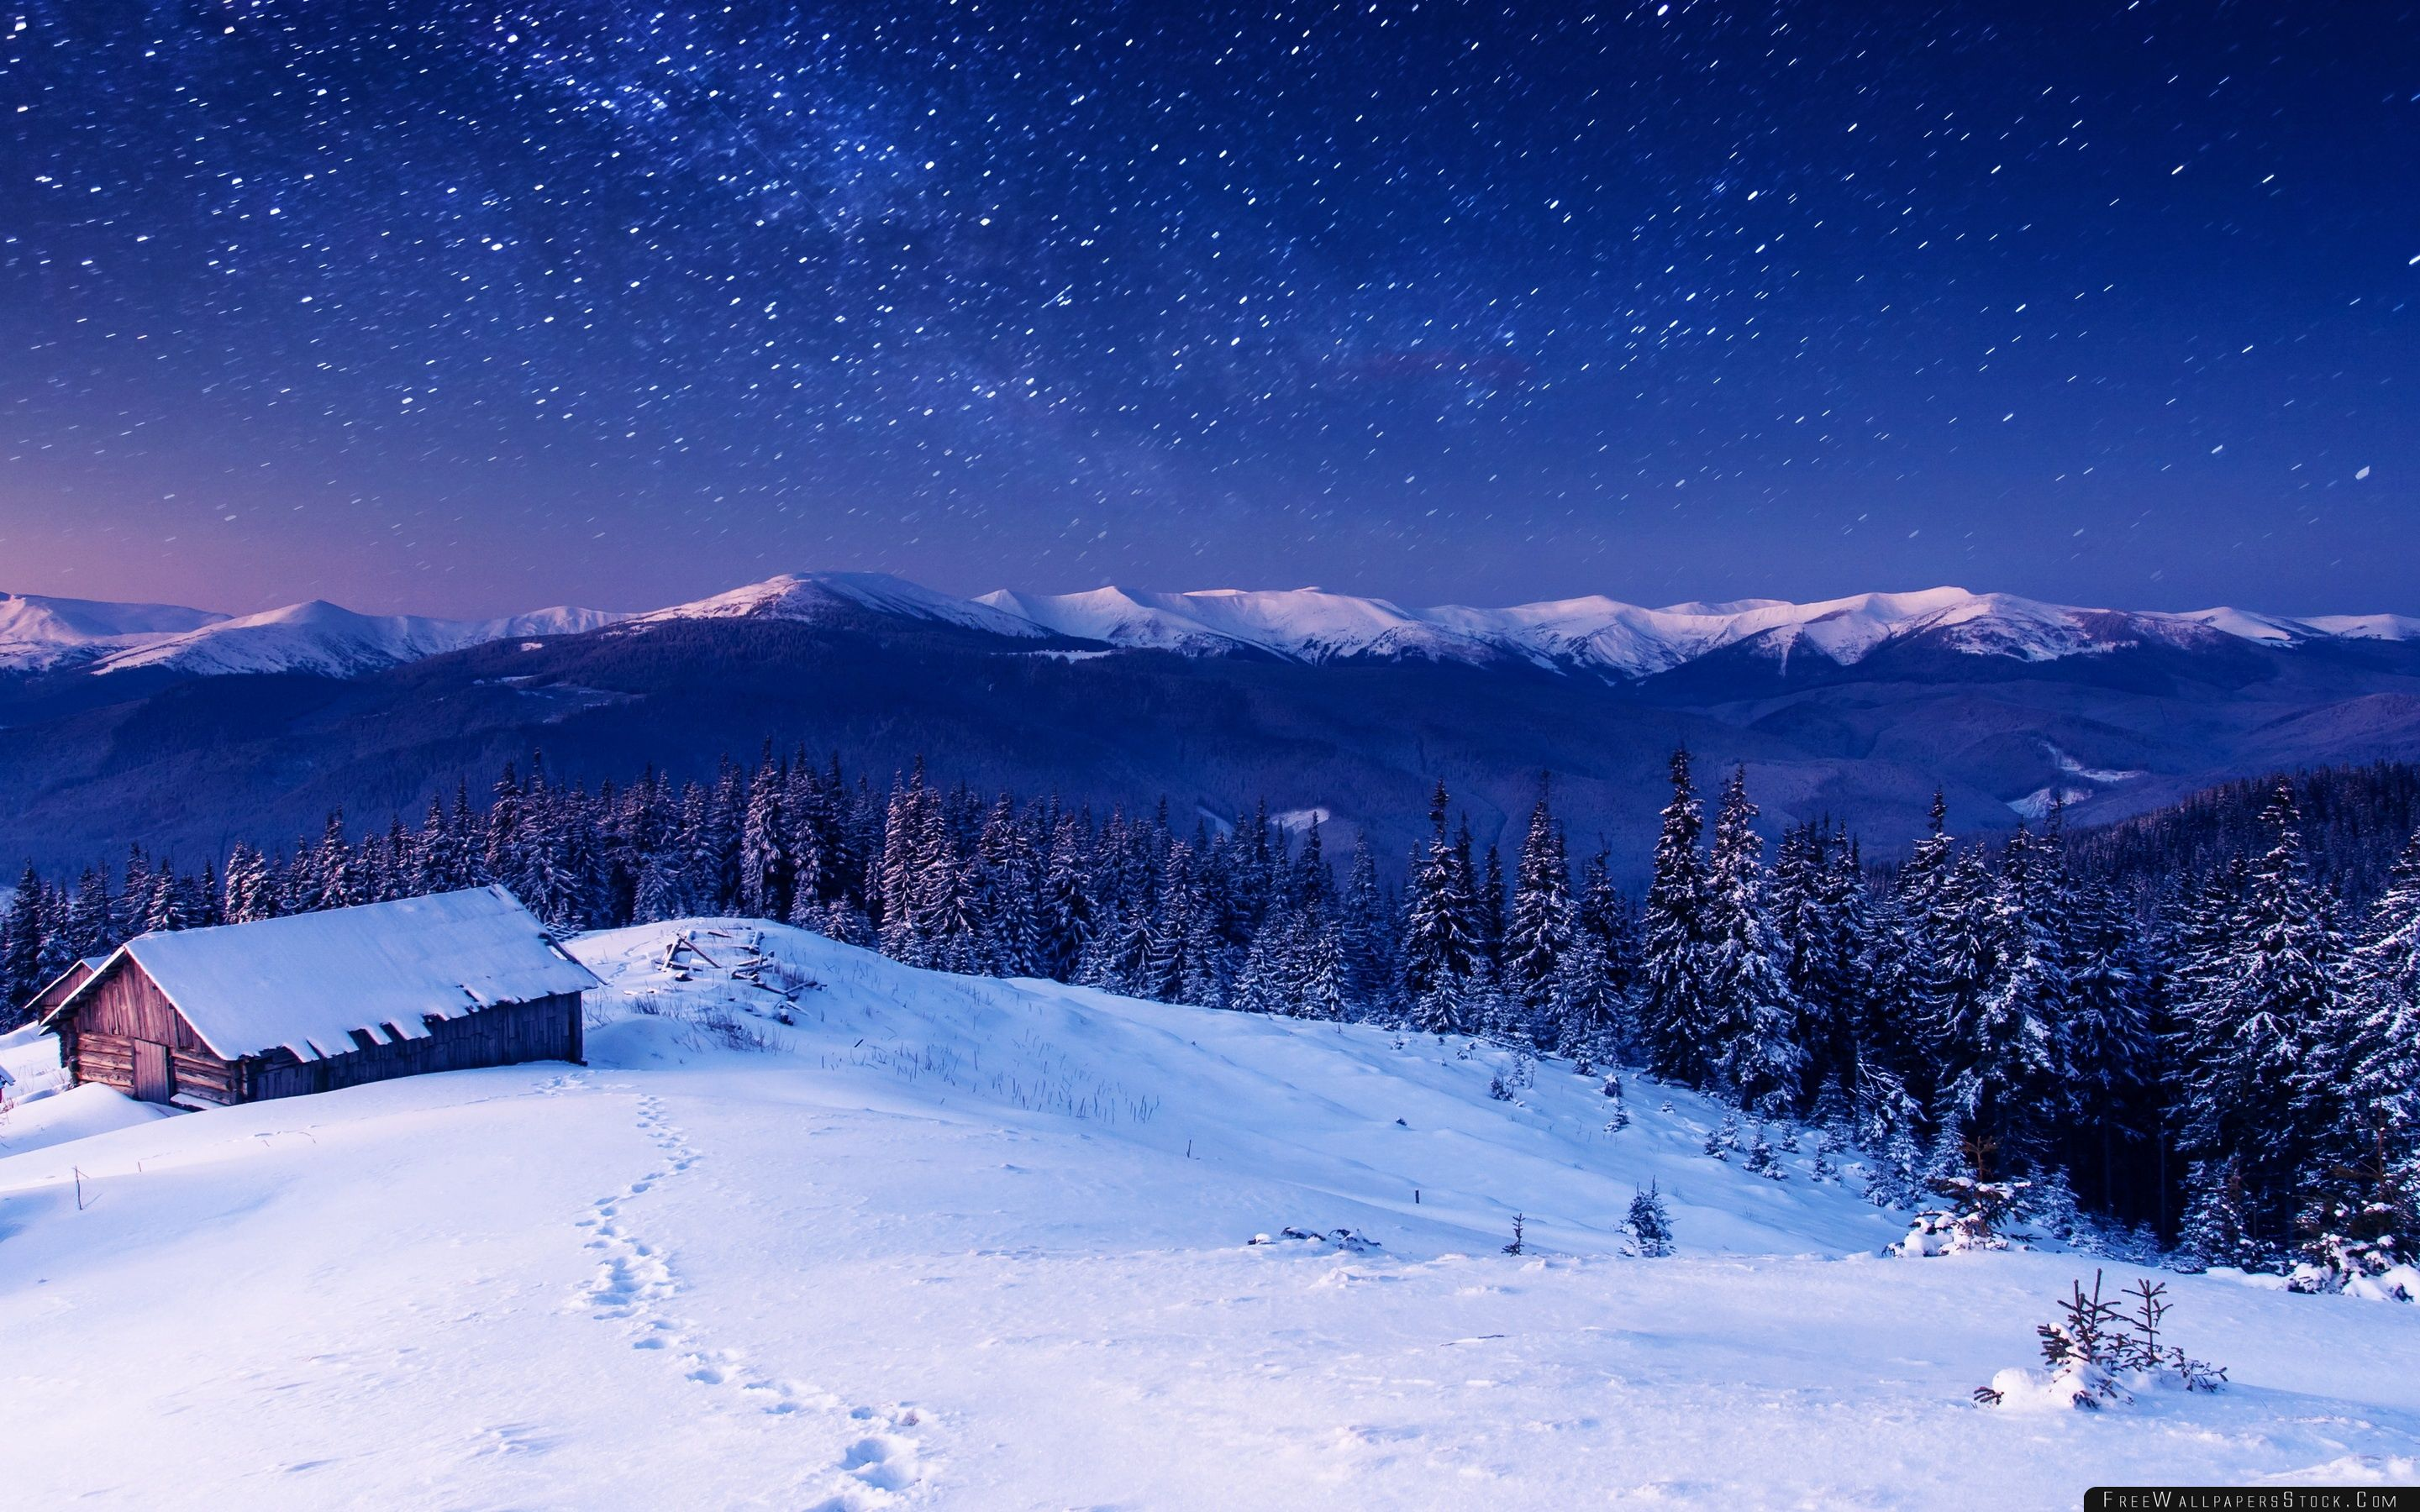 Download Free Wallpaper Wooden House Under Sky With Stars